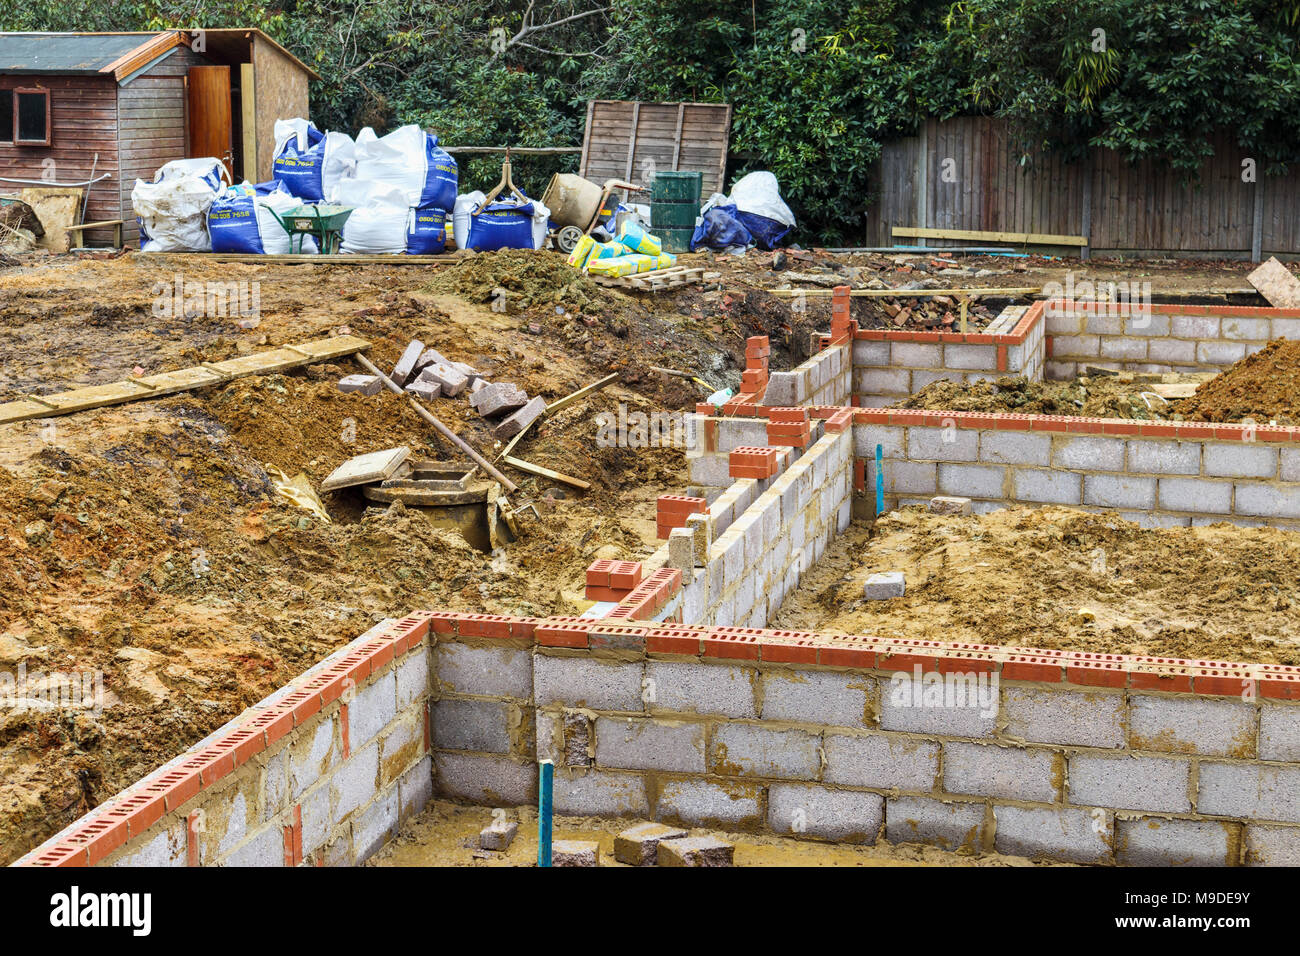 Brick And Breeze Block Foundations For A New House On A Construction Site  For A New